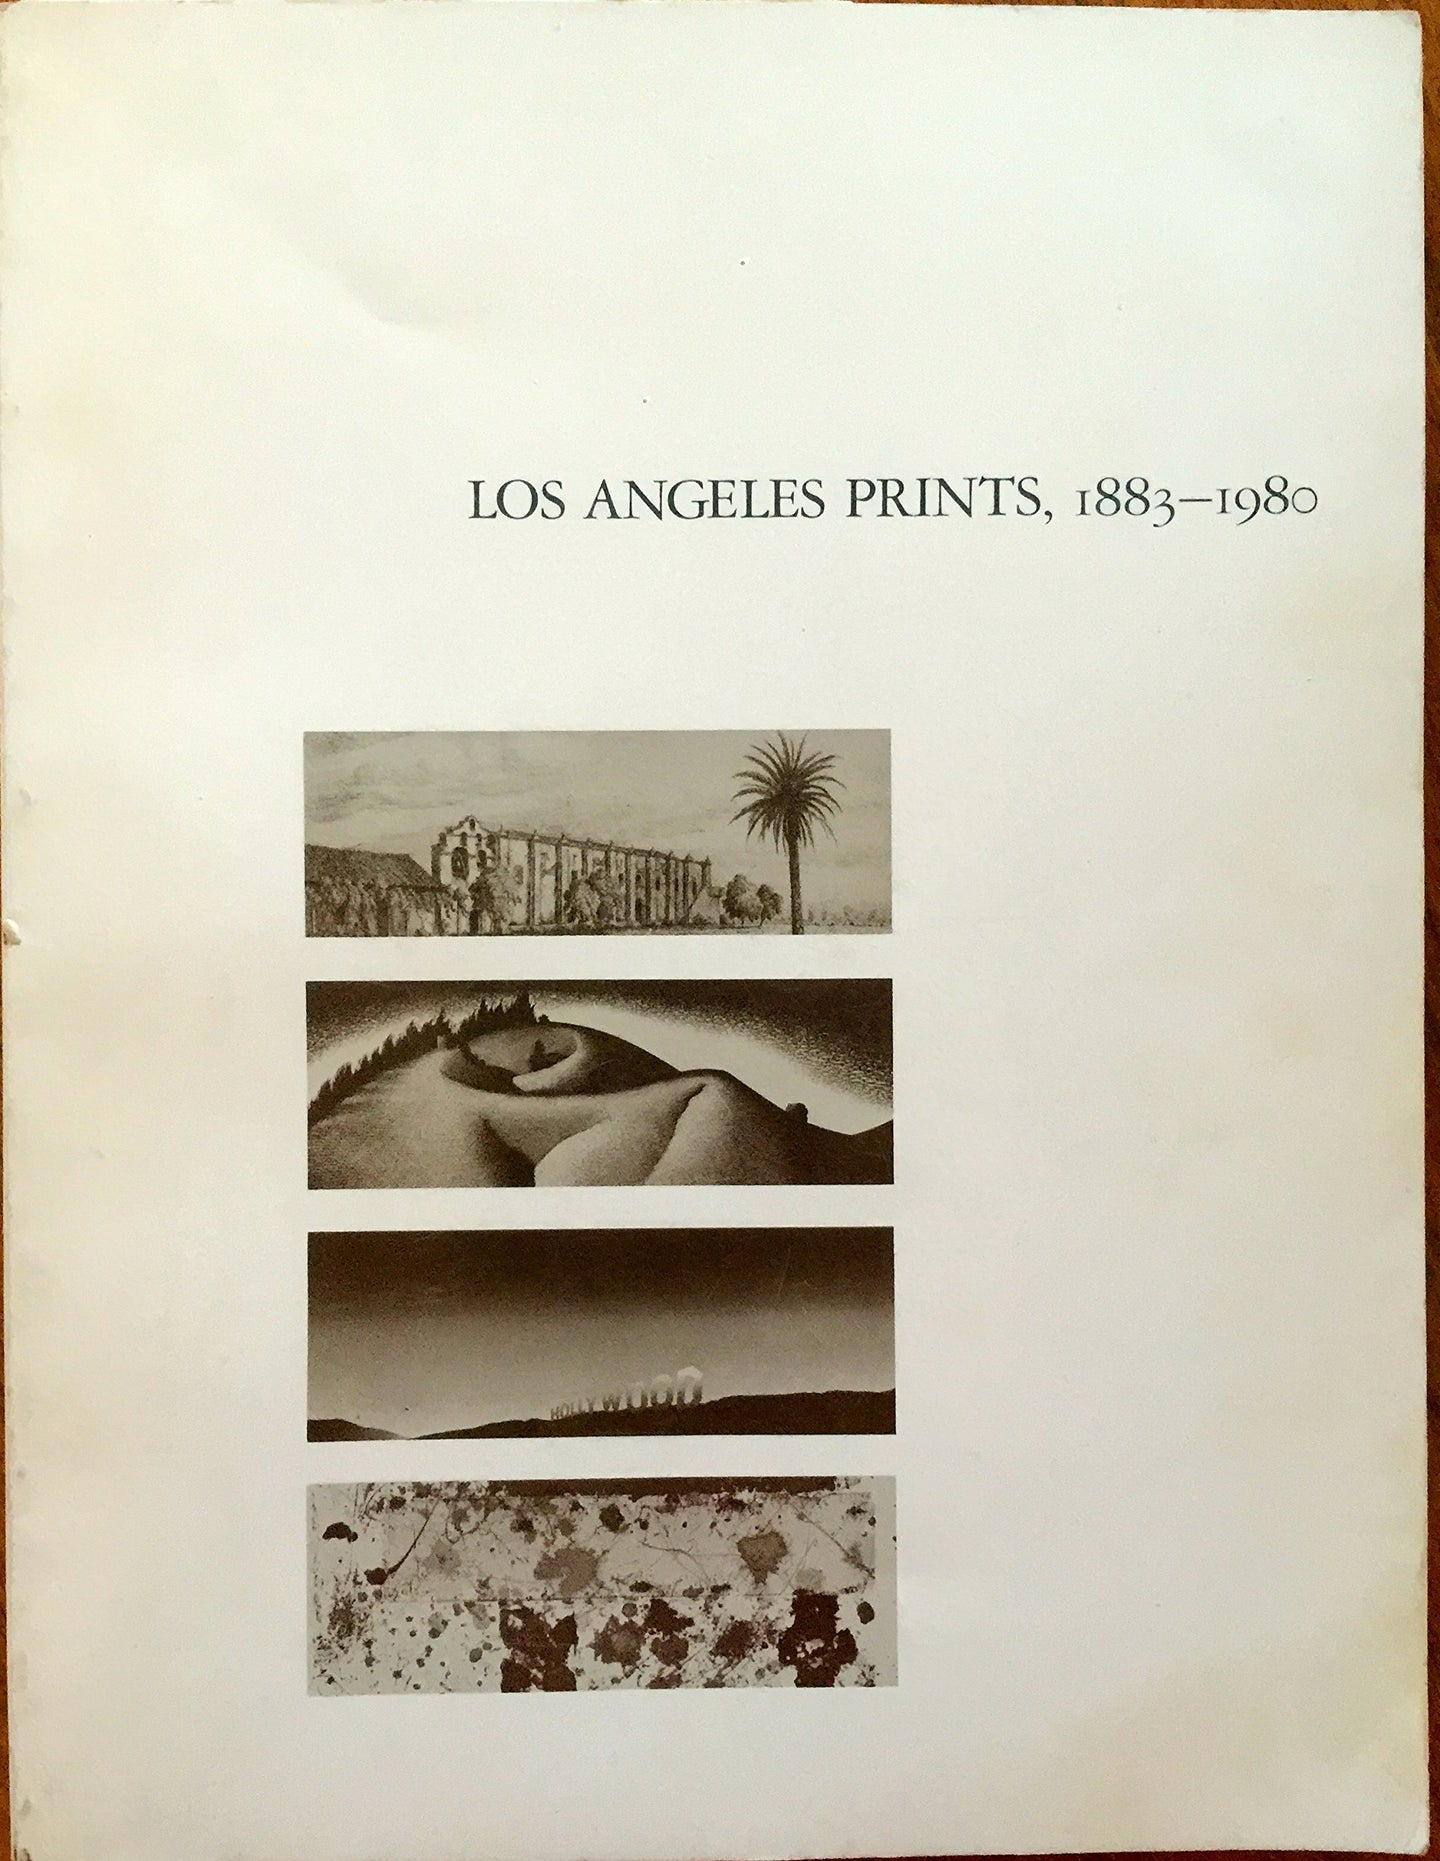 Los Angeles Prints, 1883-1980